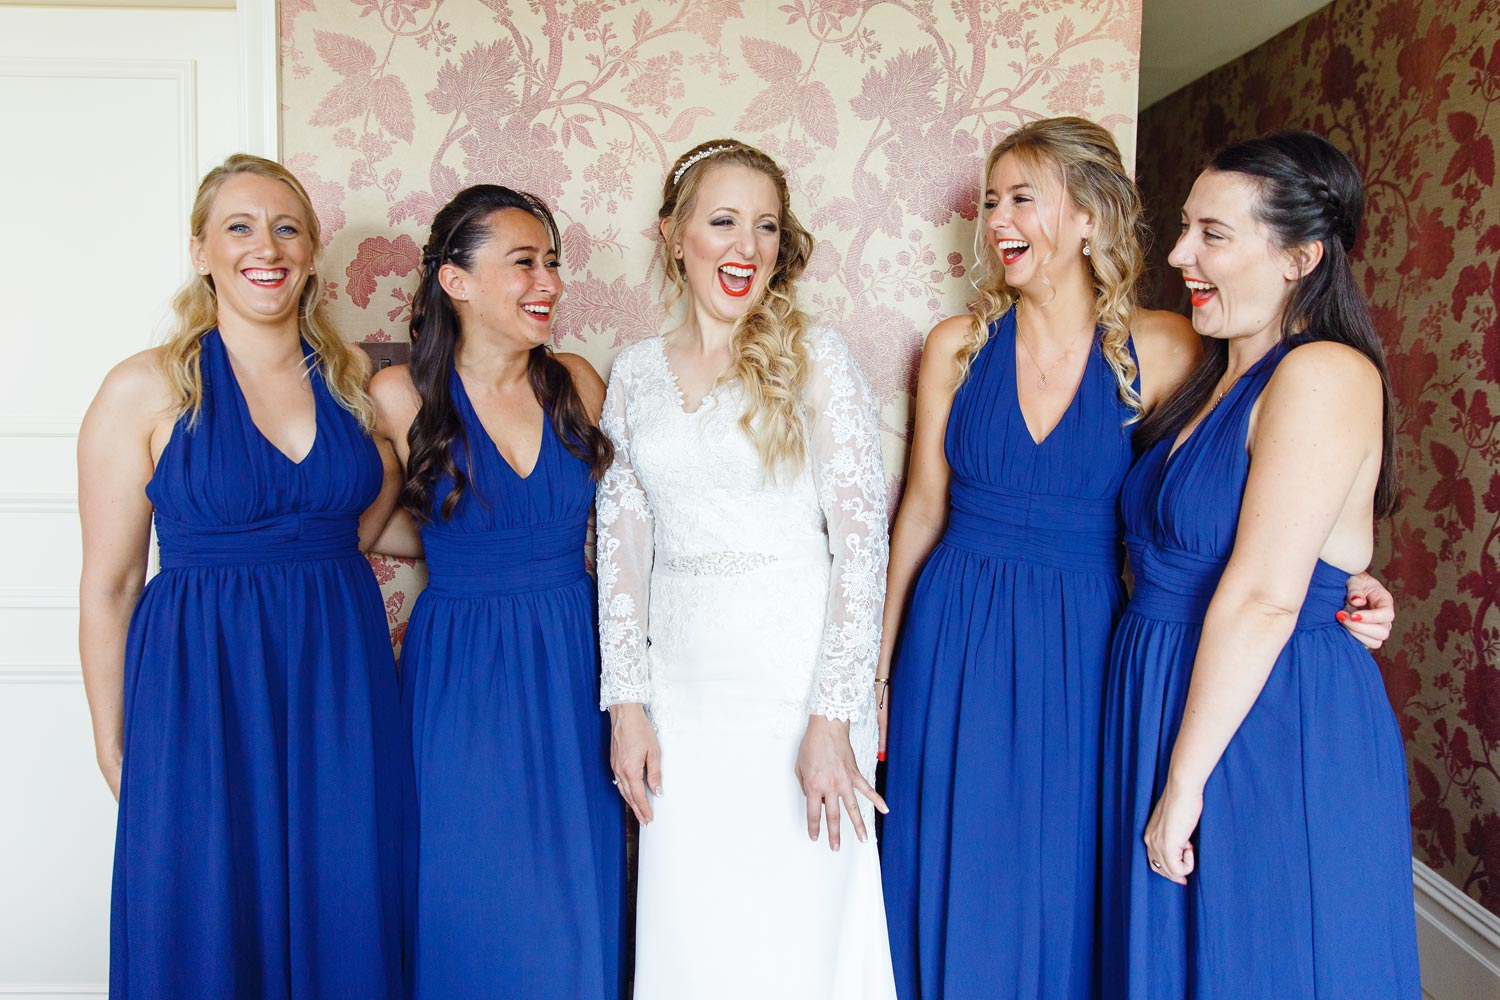 A bride and her bridesmaids pose at The Petersham Hotel before her wedding at York House in London.